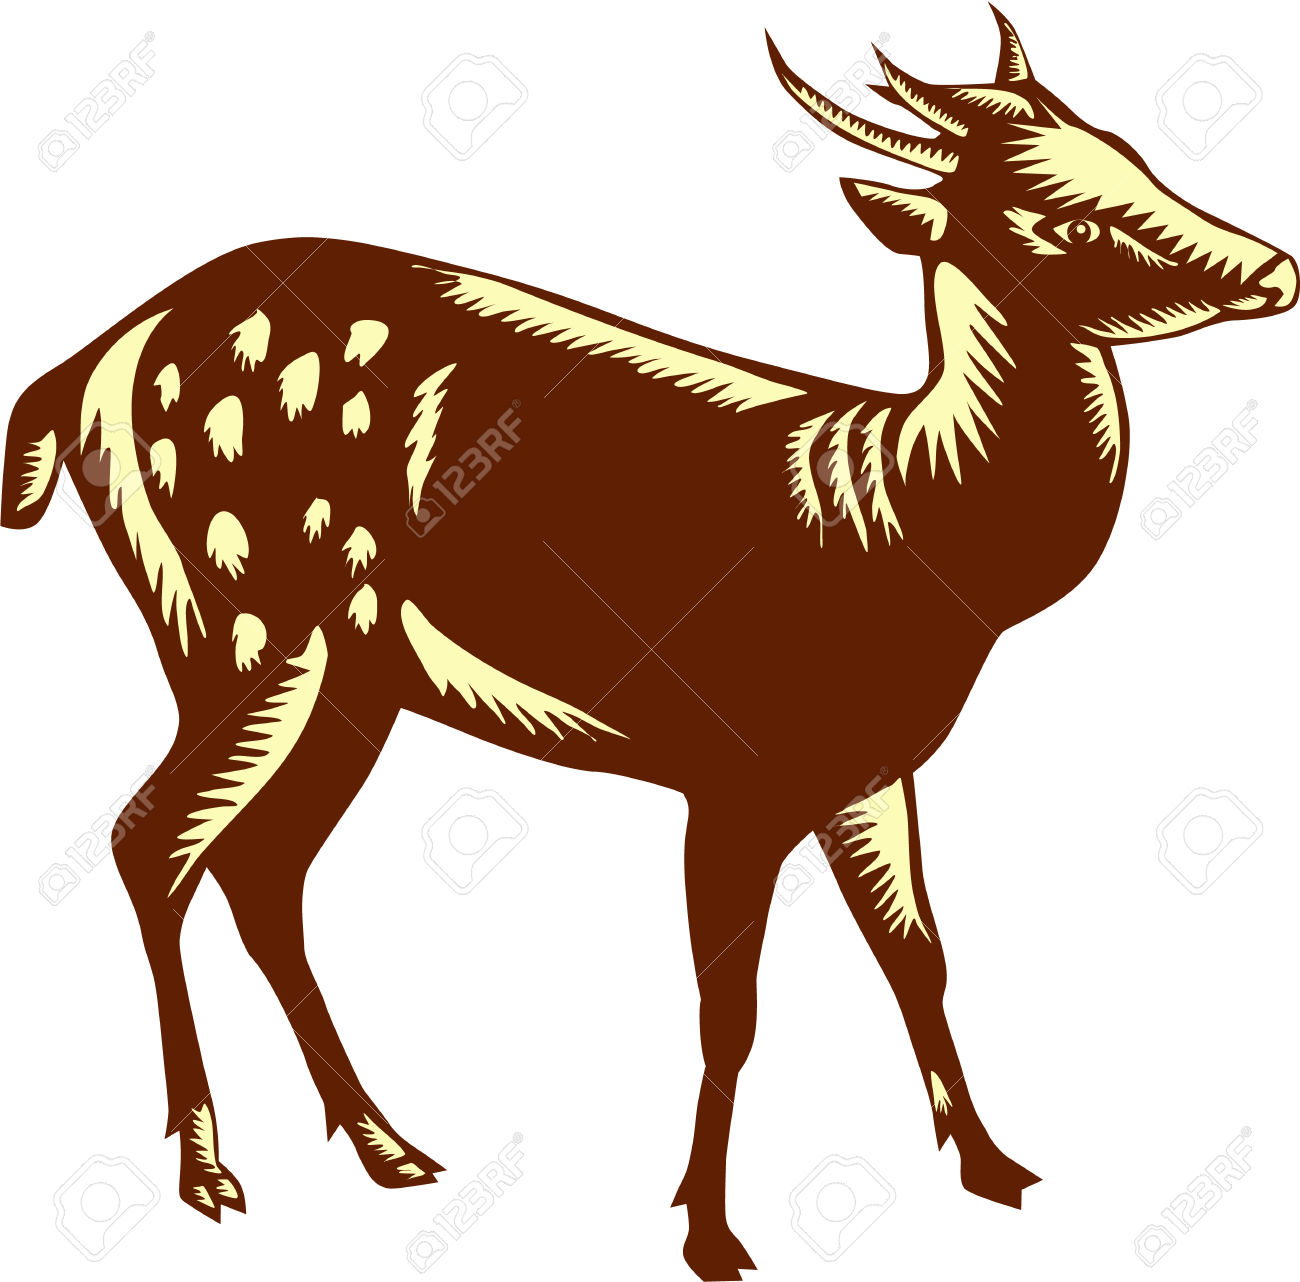 Illustration Of The Visayan Spotted Deer (Rusa Alfredi), Also.